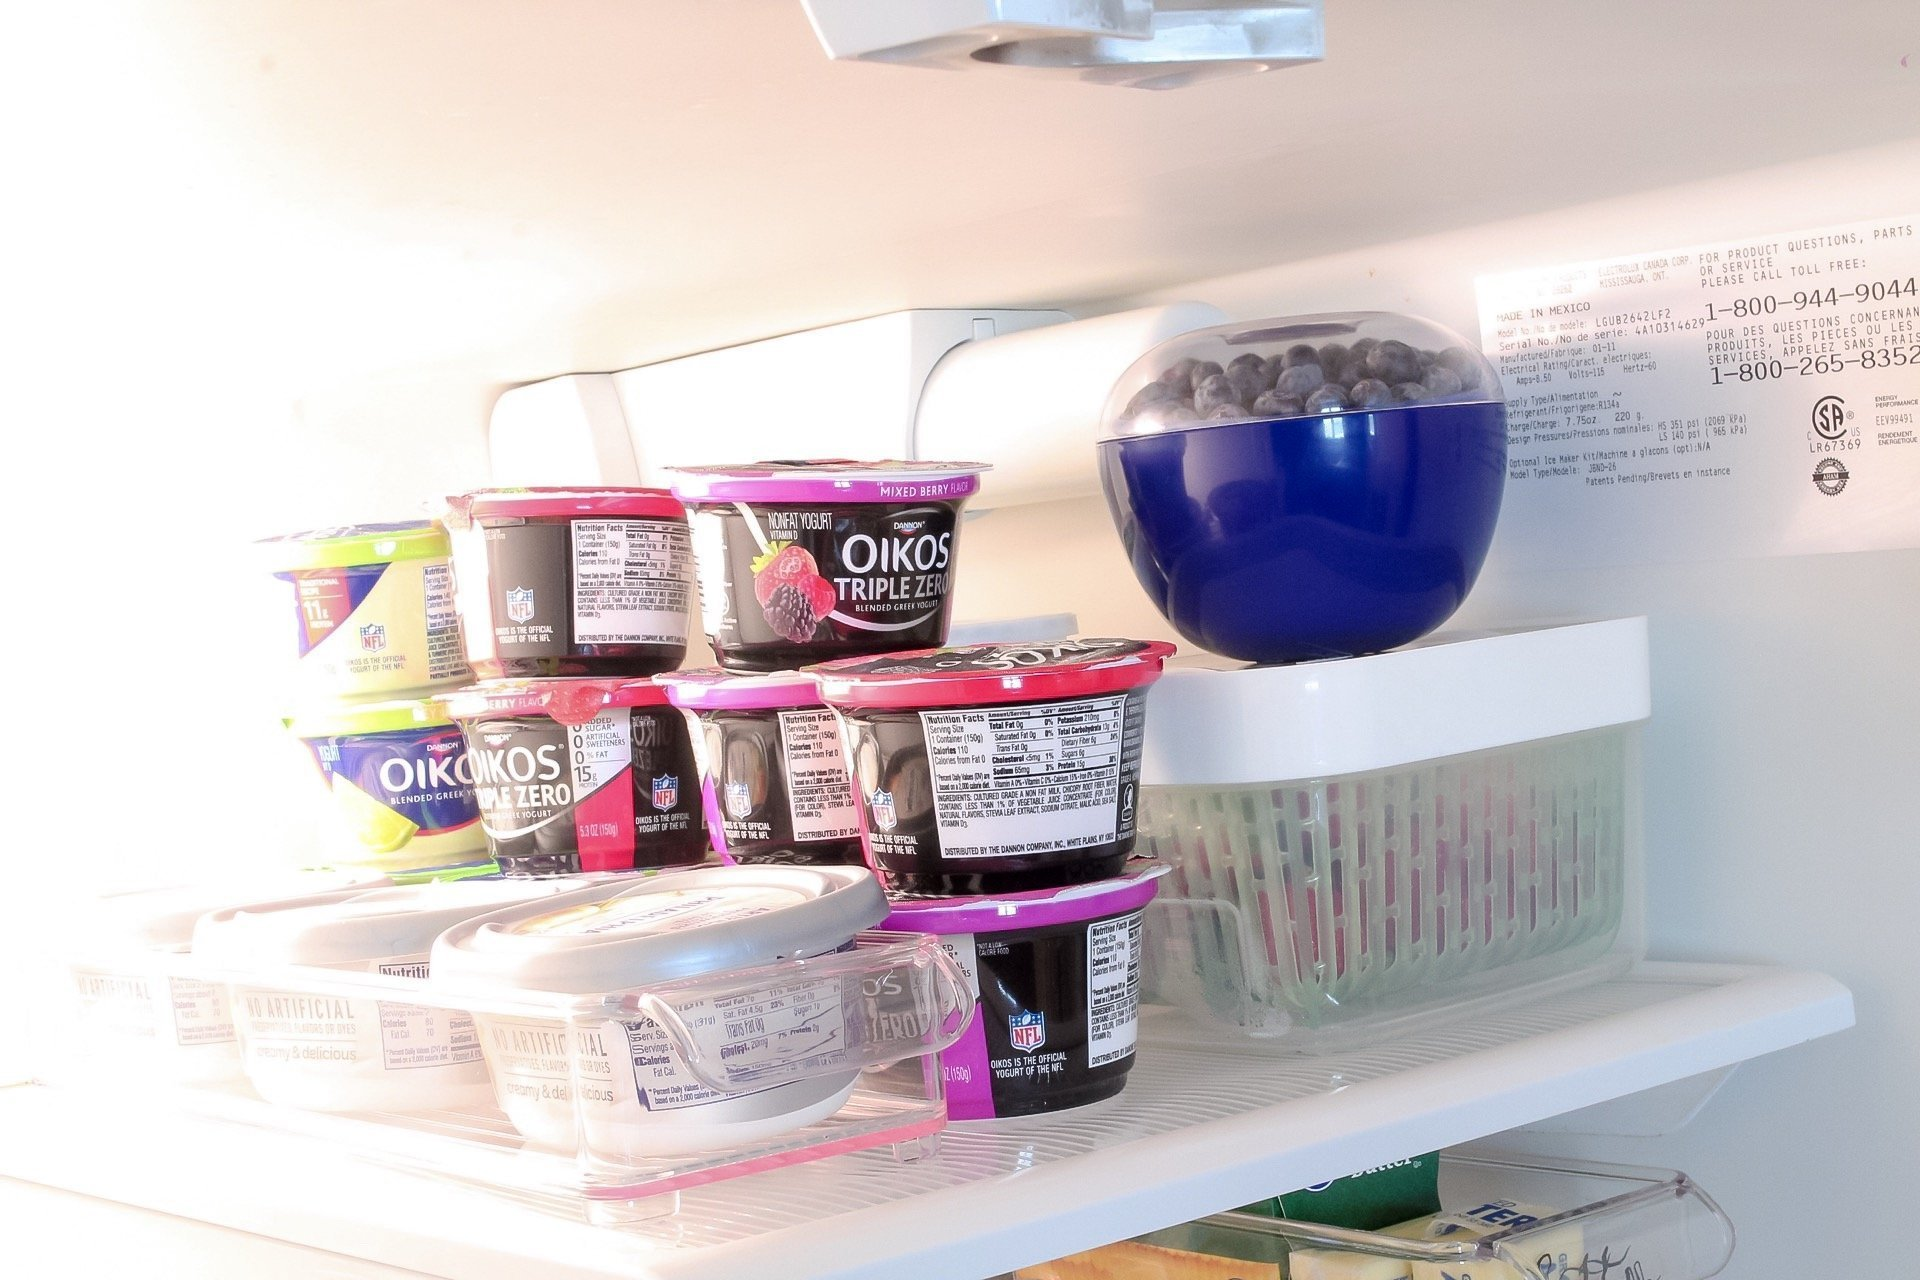 Our organized top shelf where we put out blueberries, yogurt, and cream cheese!